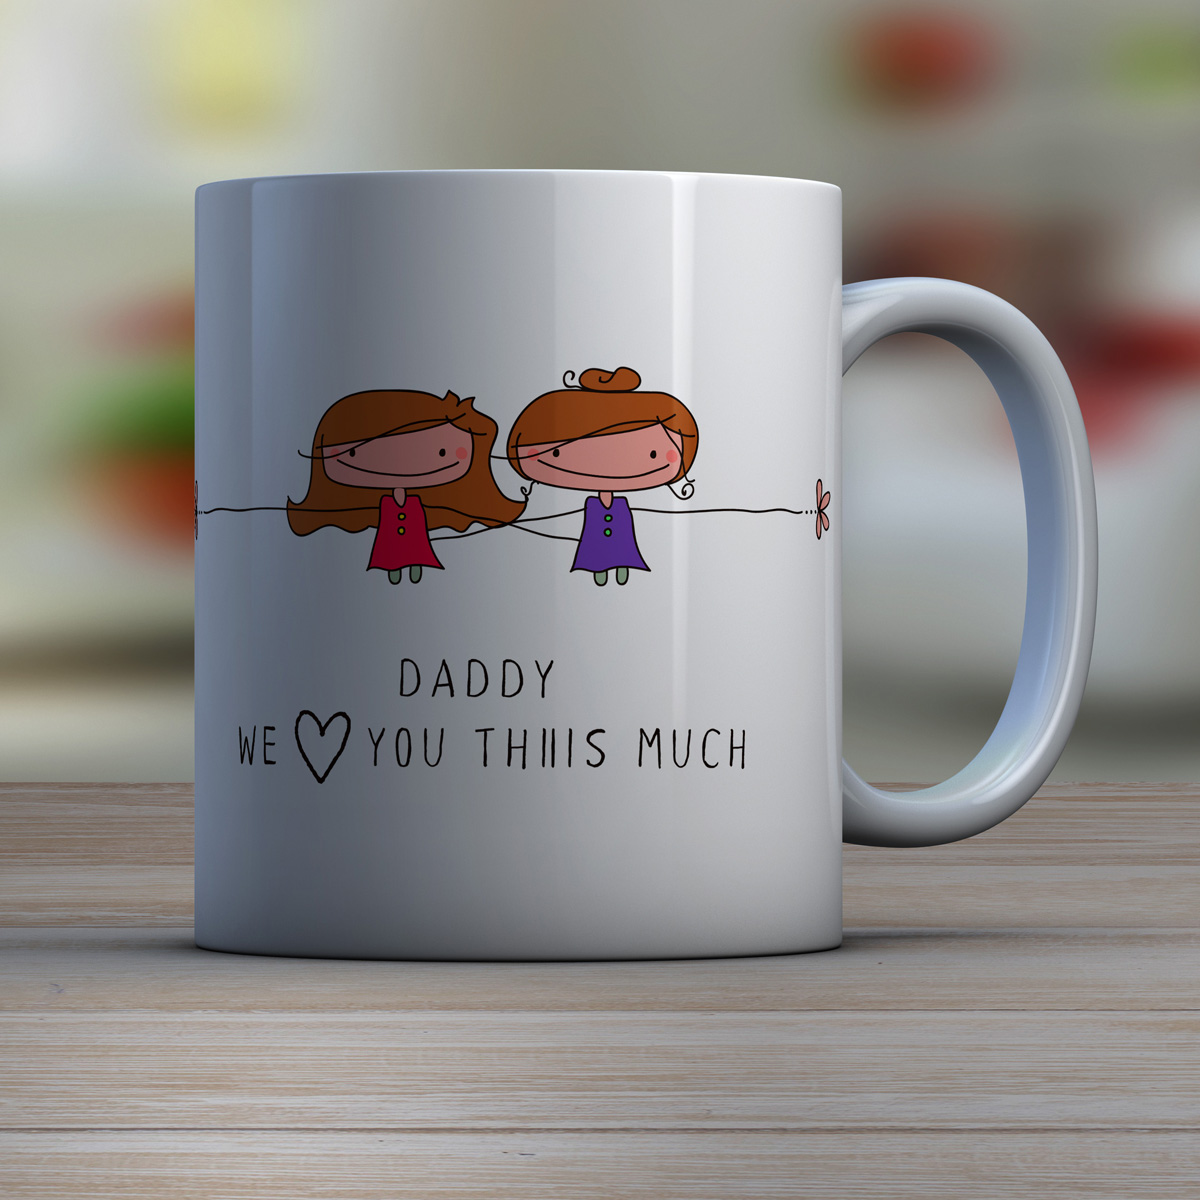 custommug2